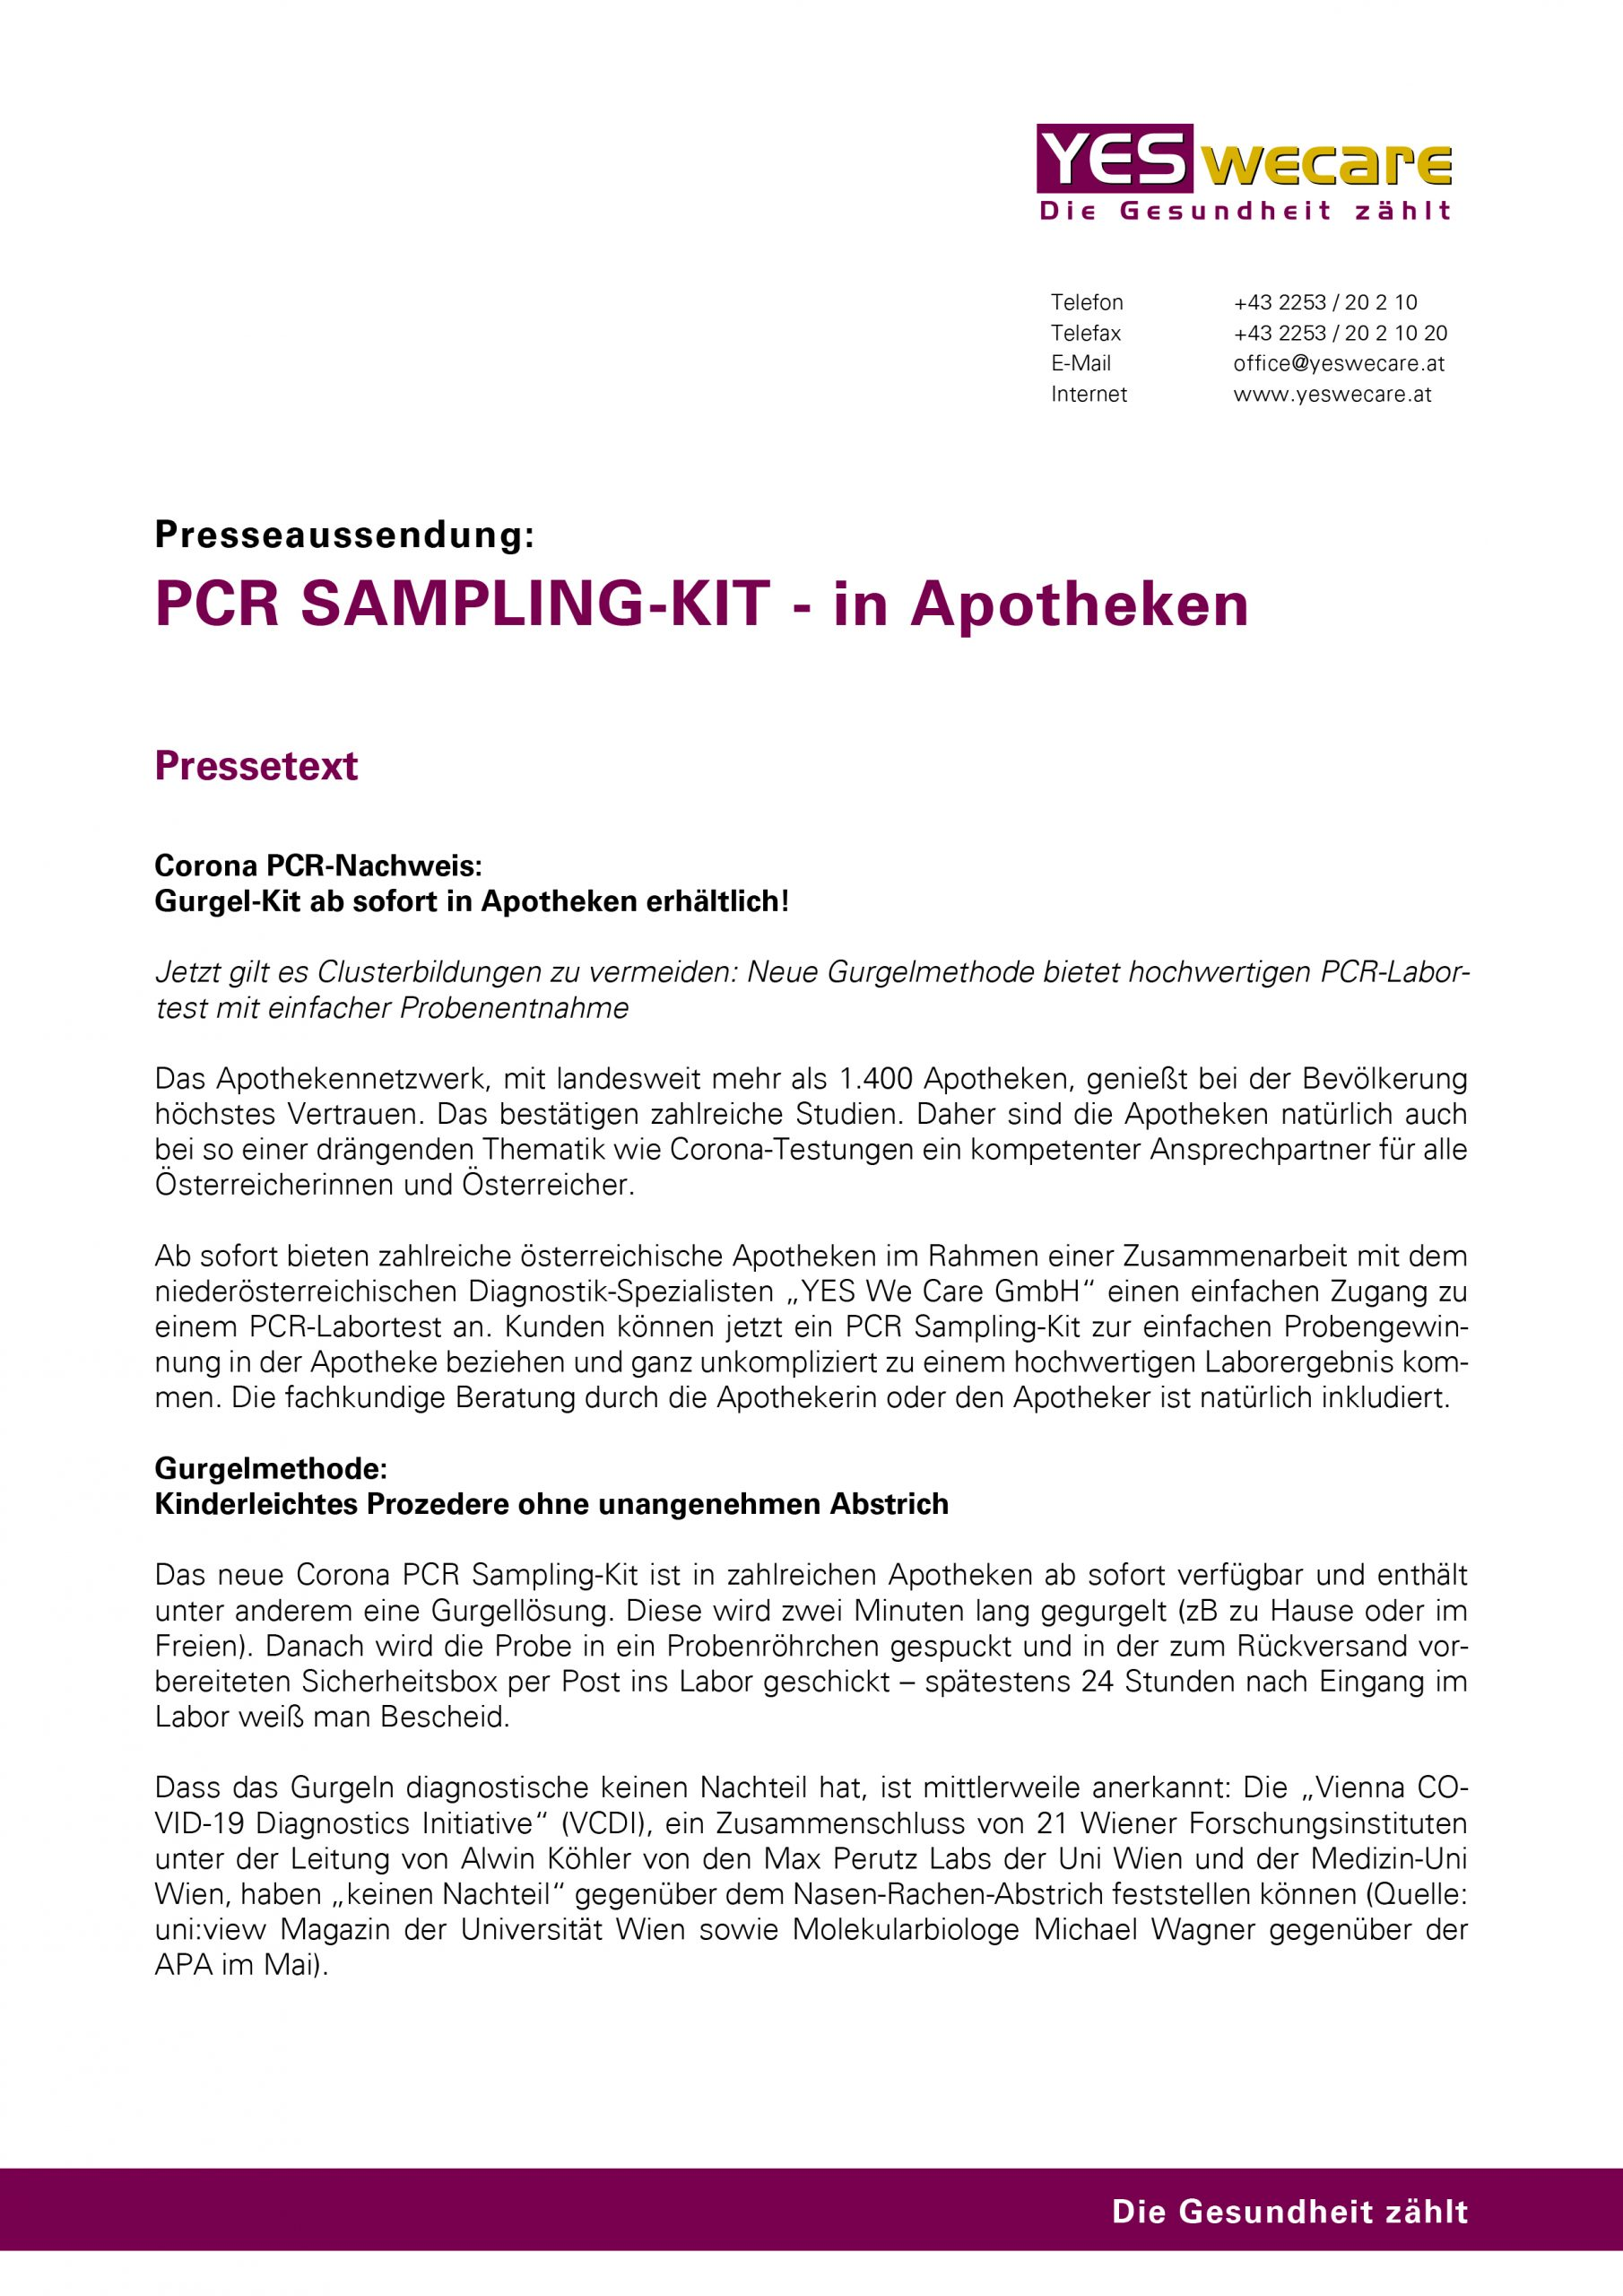 Presseaussendung_PCR Sampling-Kit Apotheken